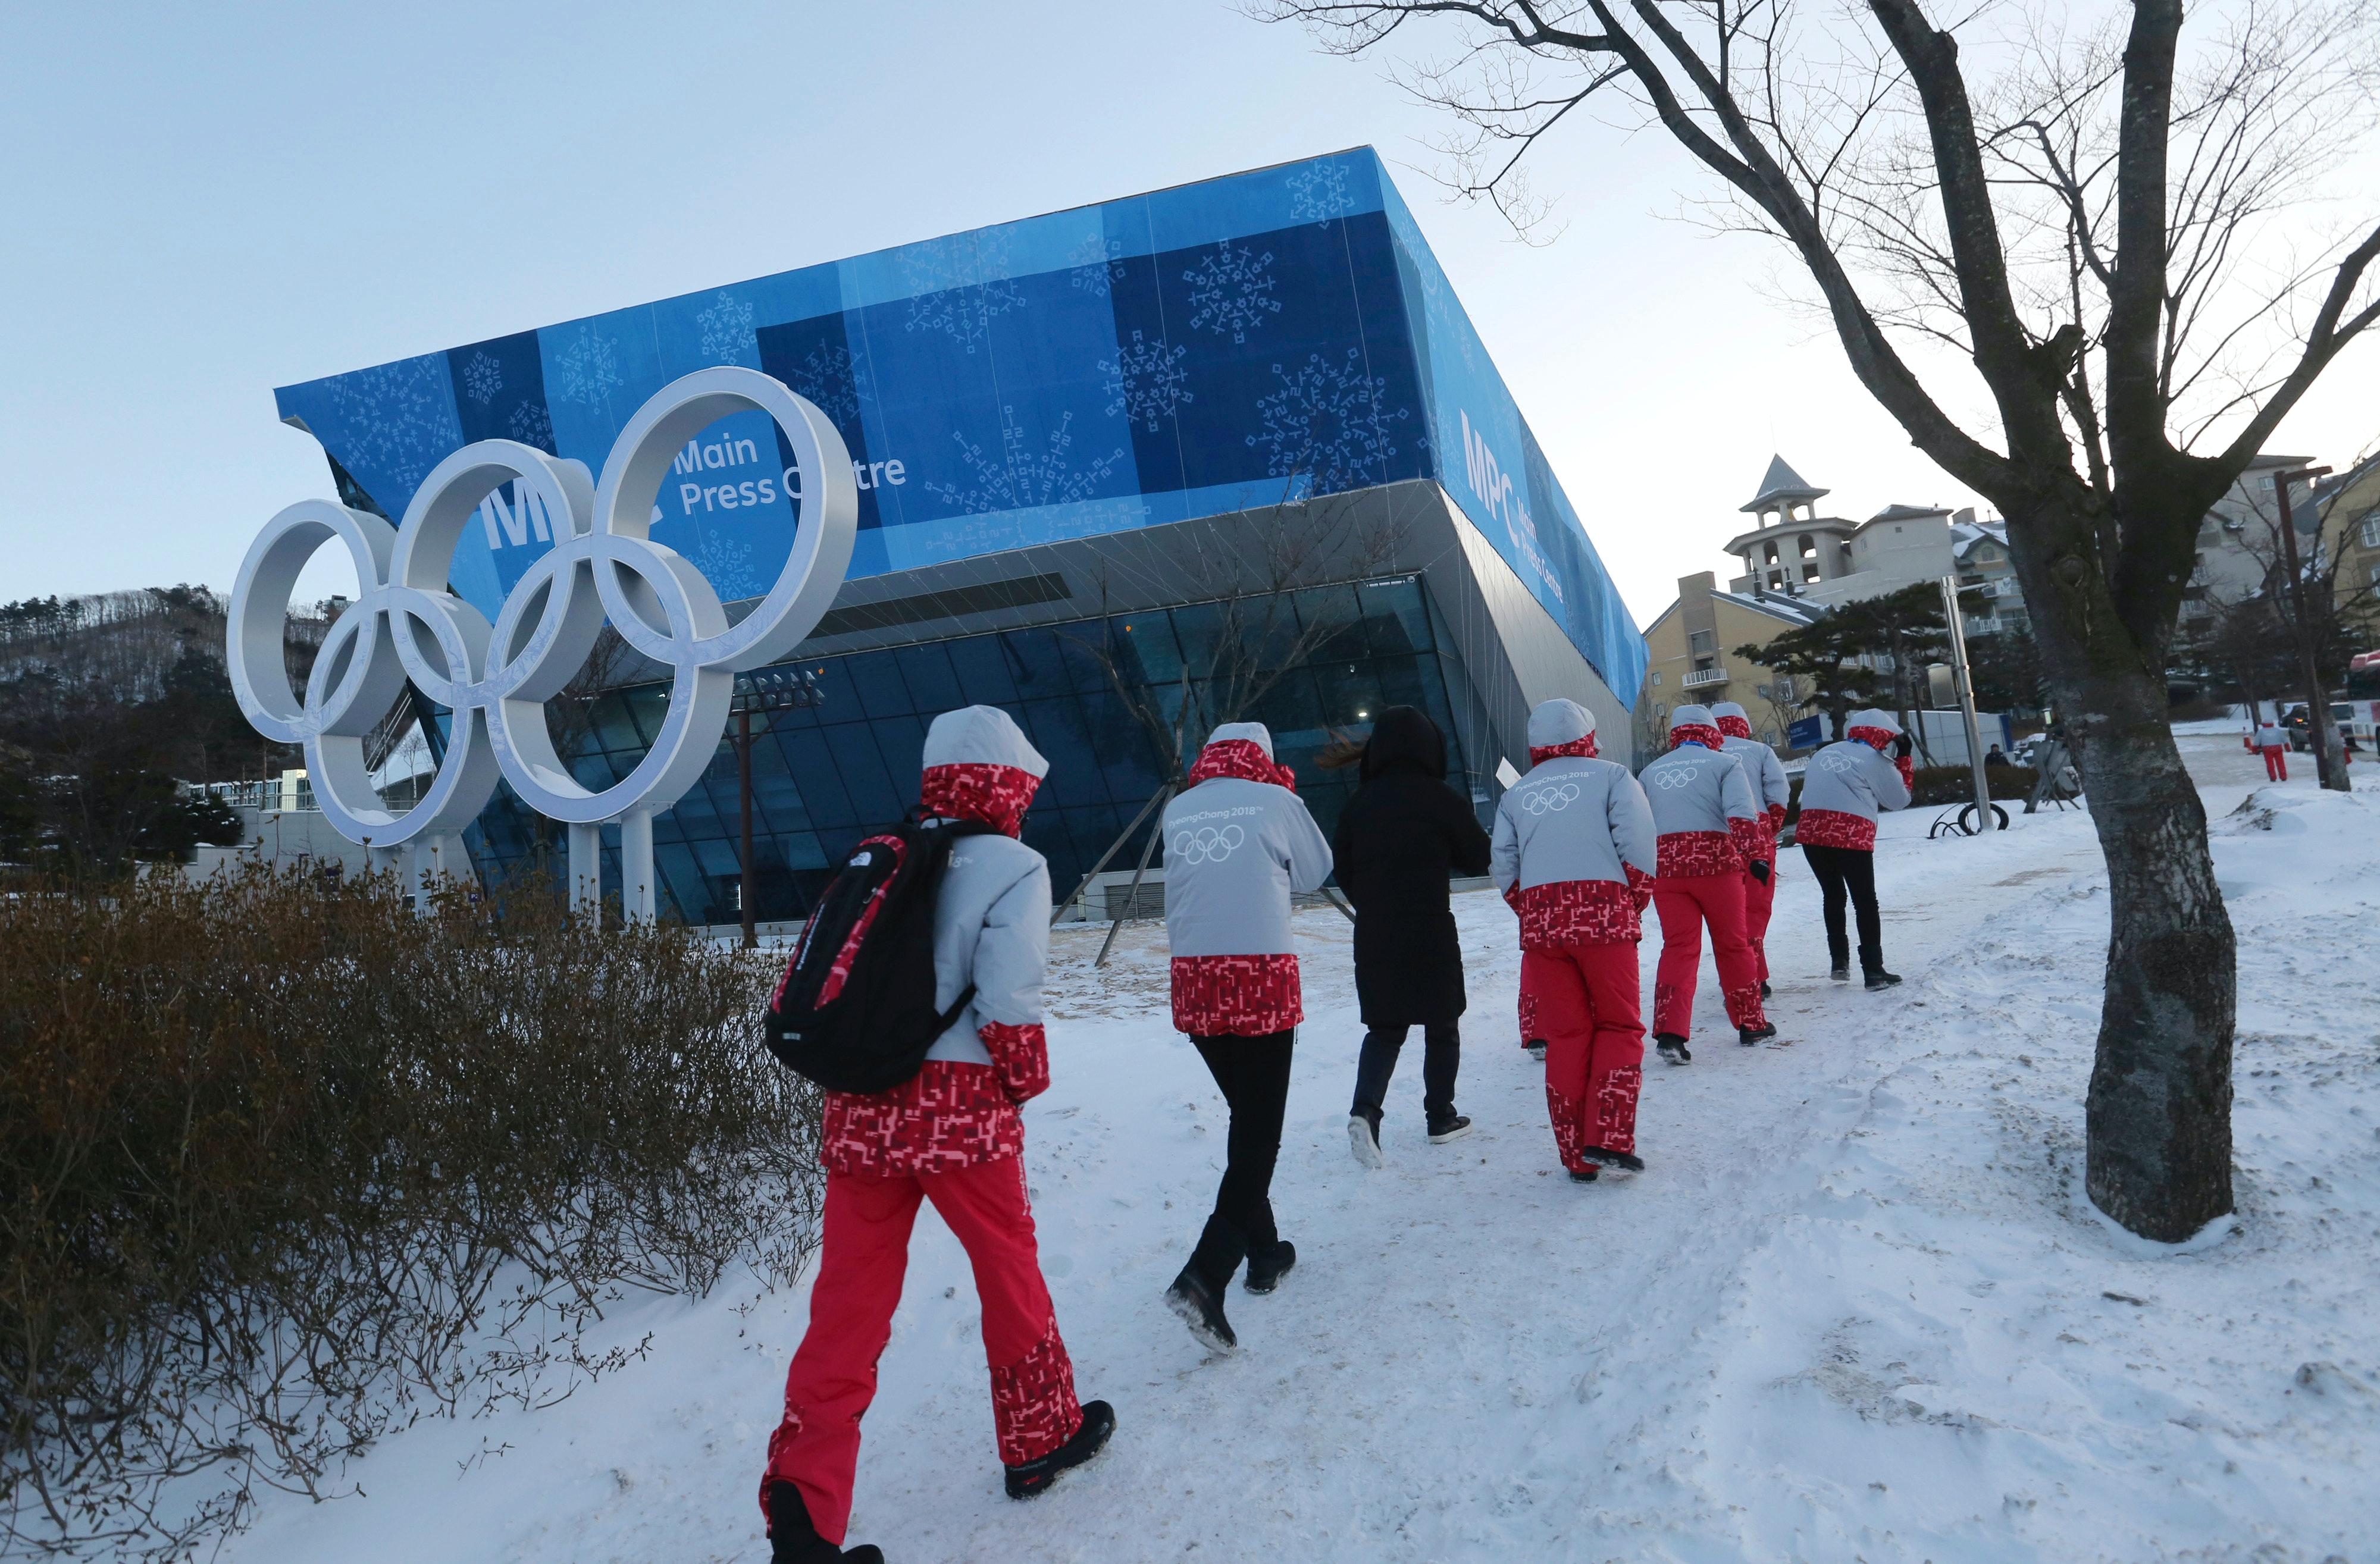 For the first time ever, Olympic villages will have sexual